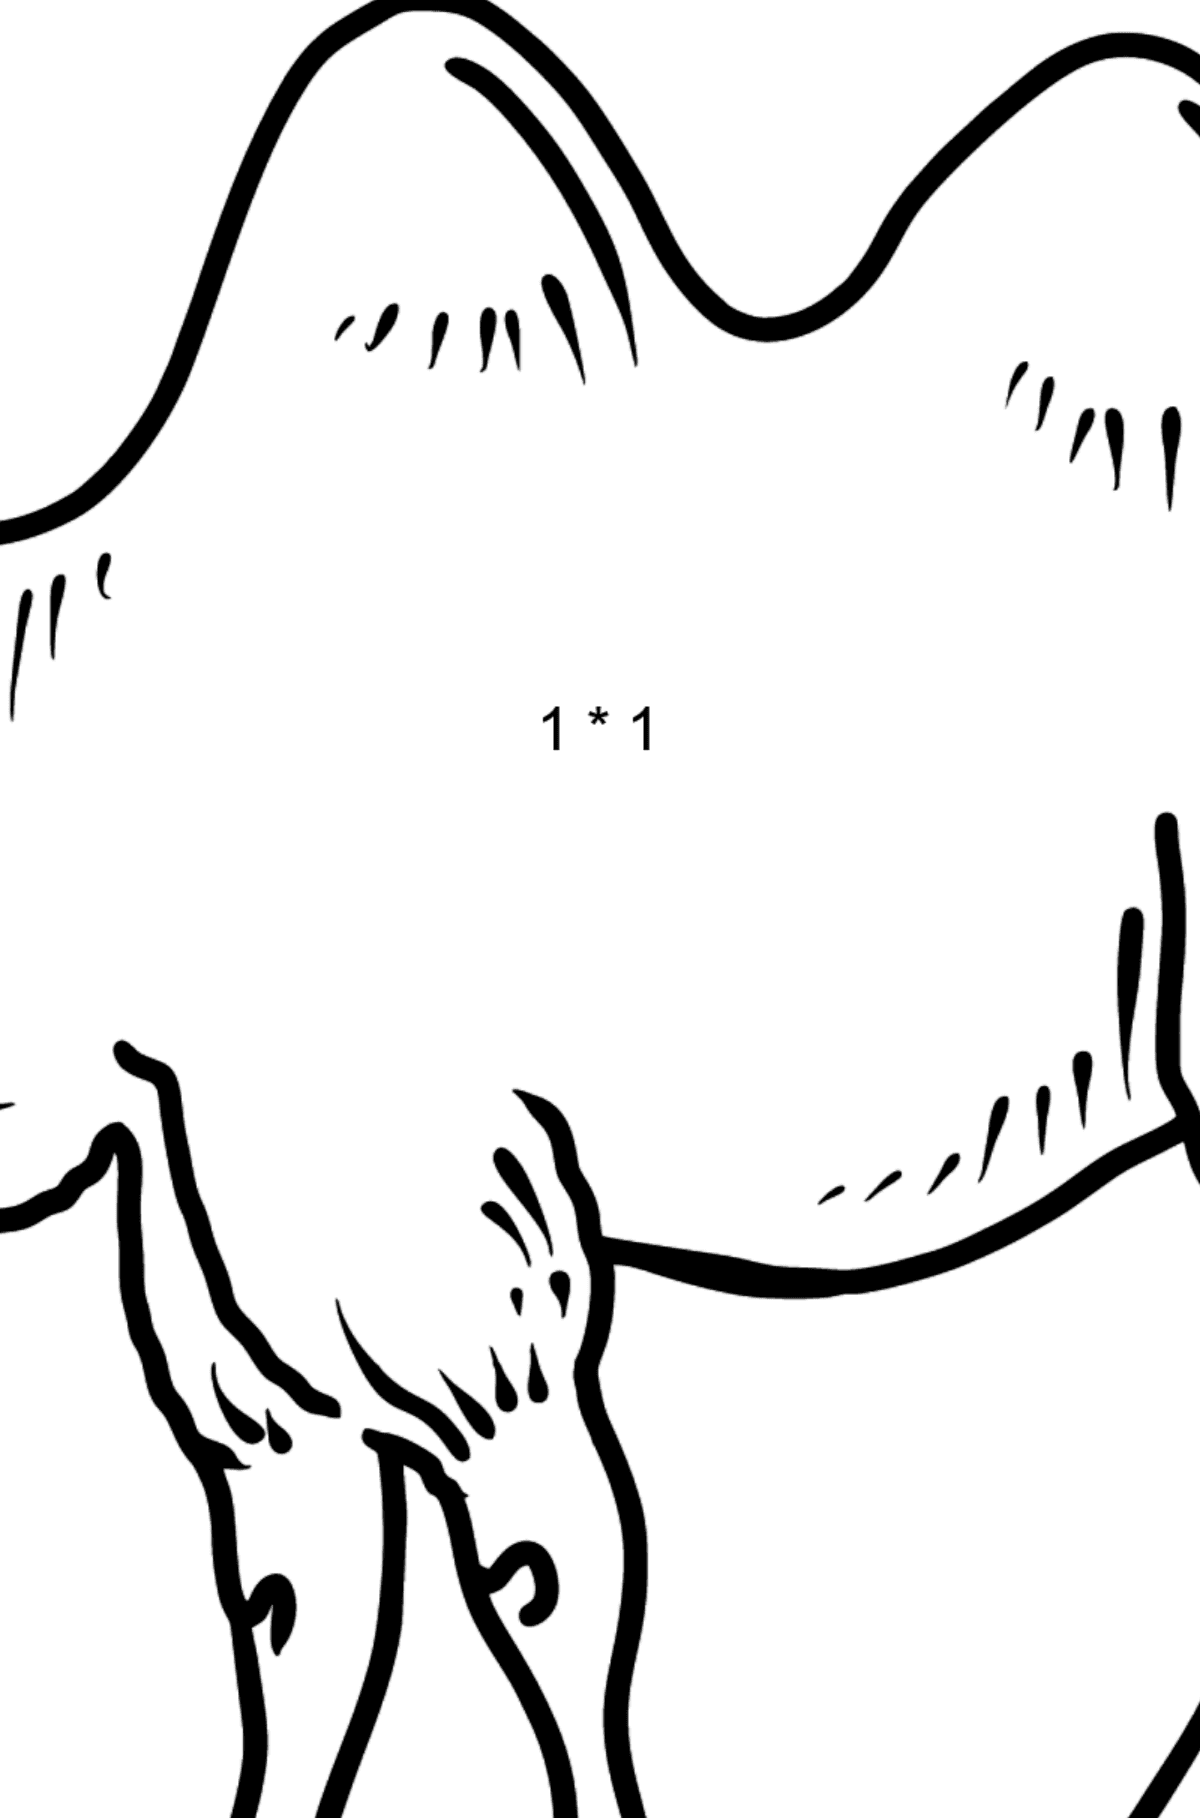 Camel coloring page - Math Coloring - Multiplication for Kids